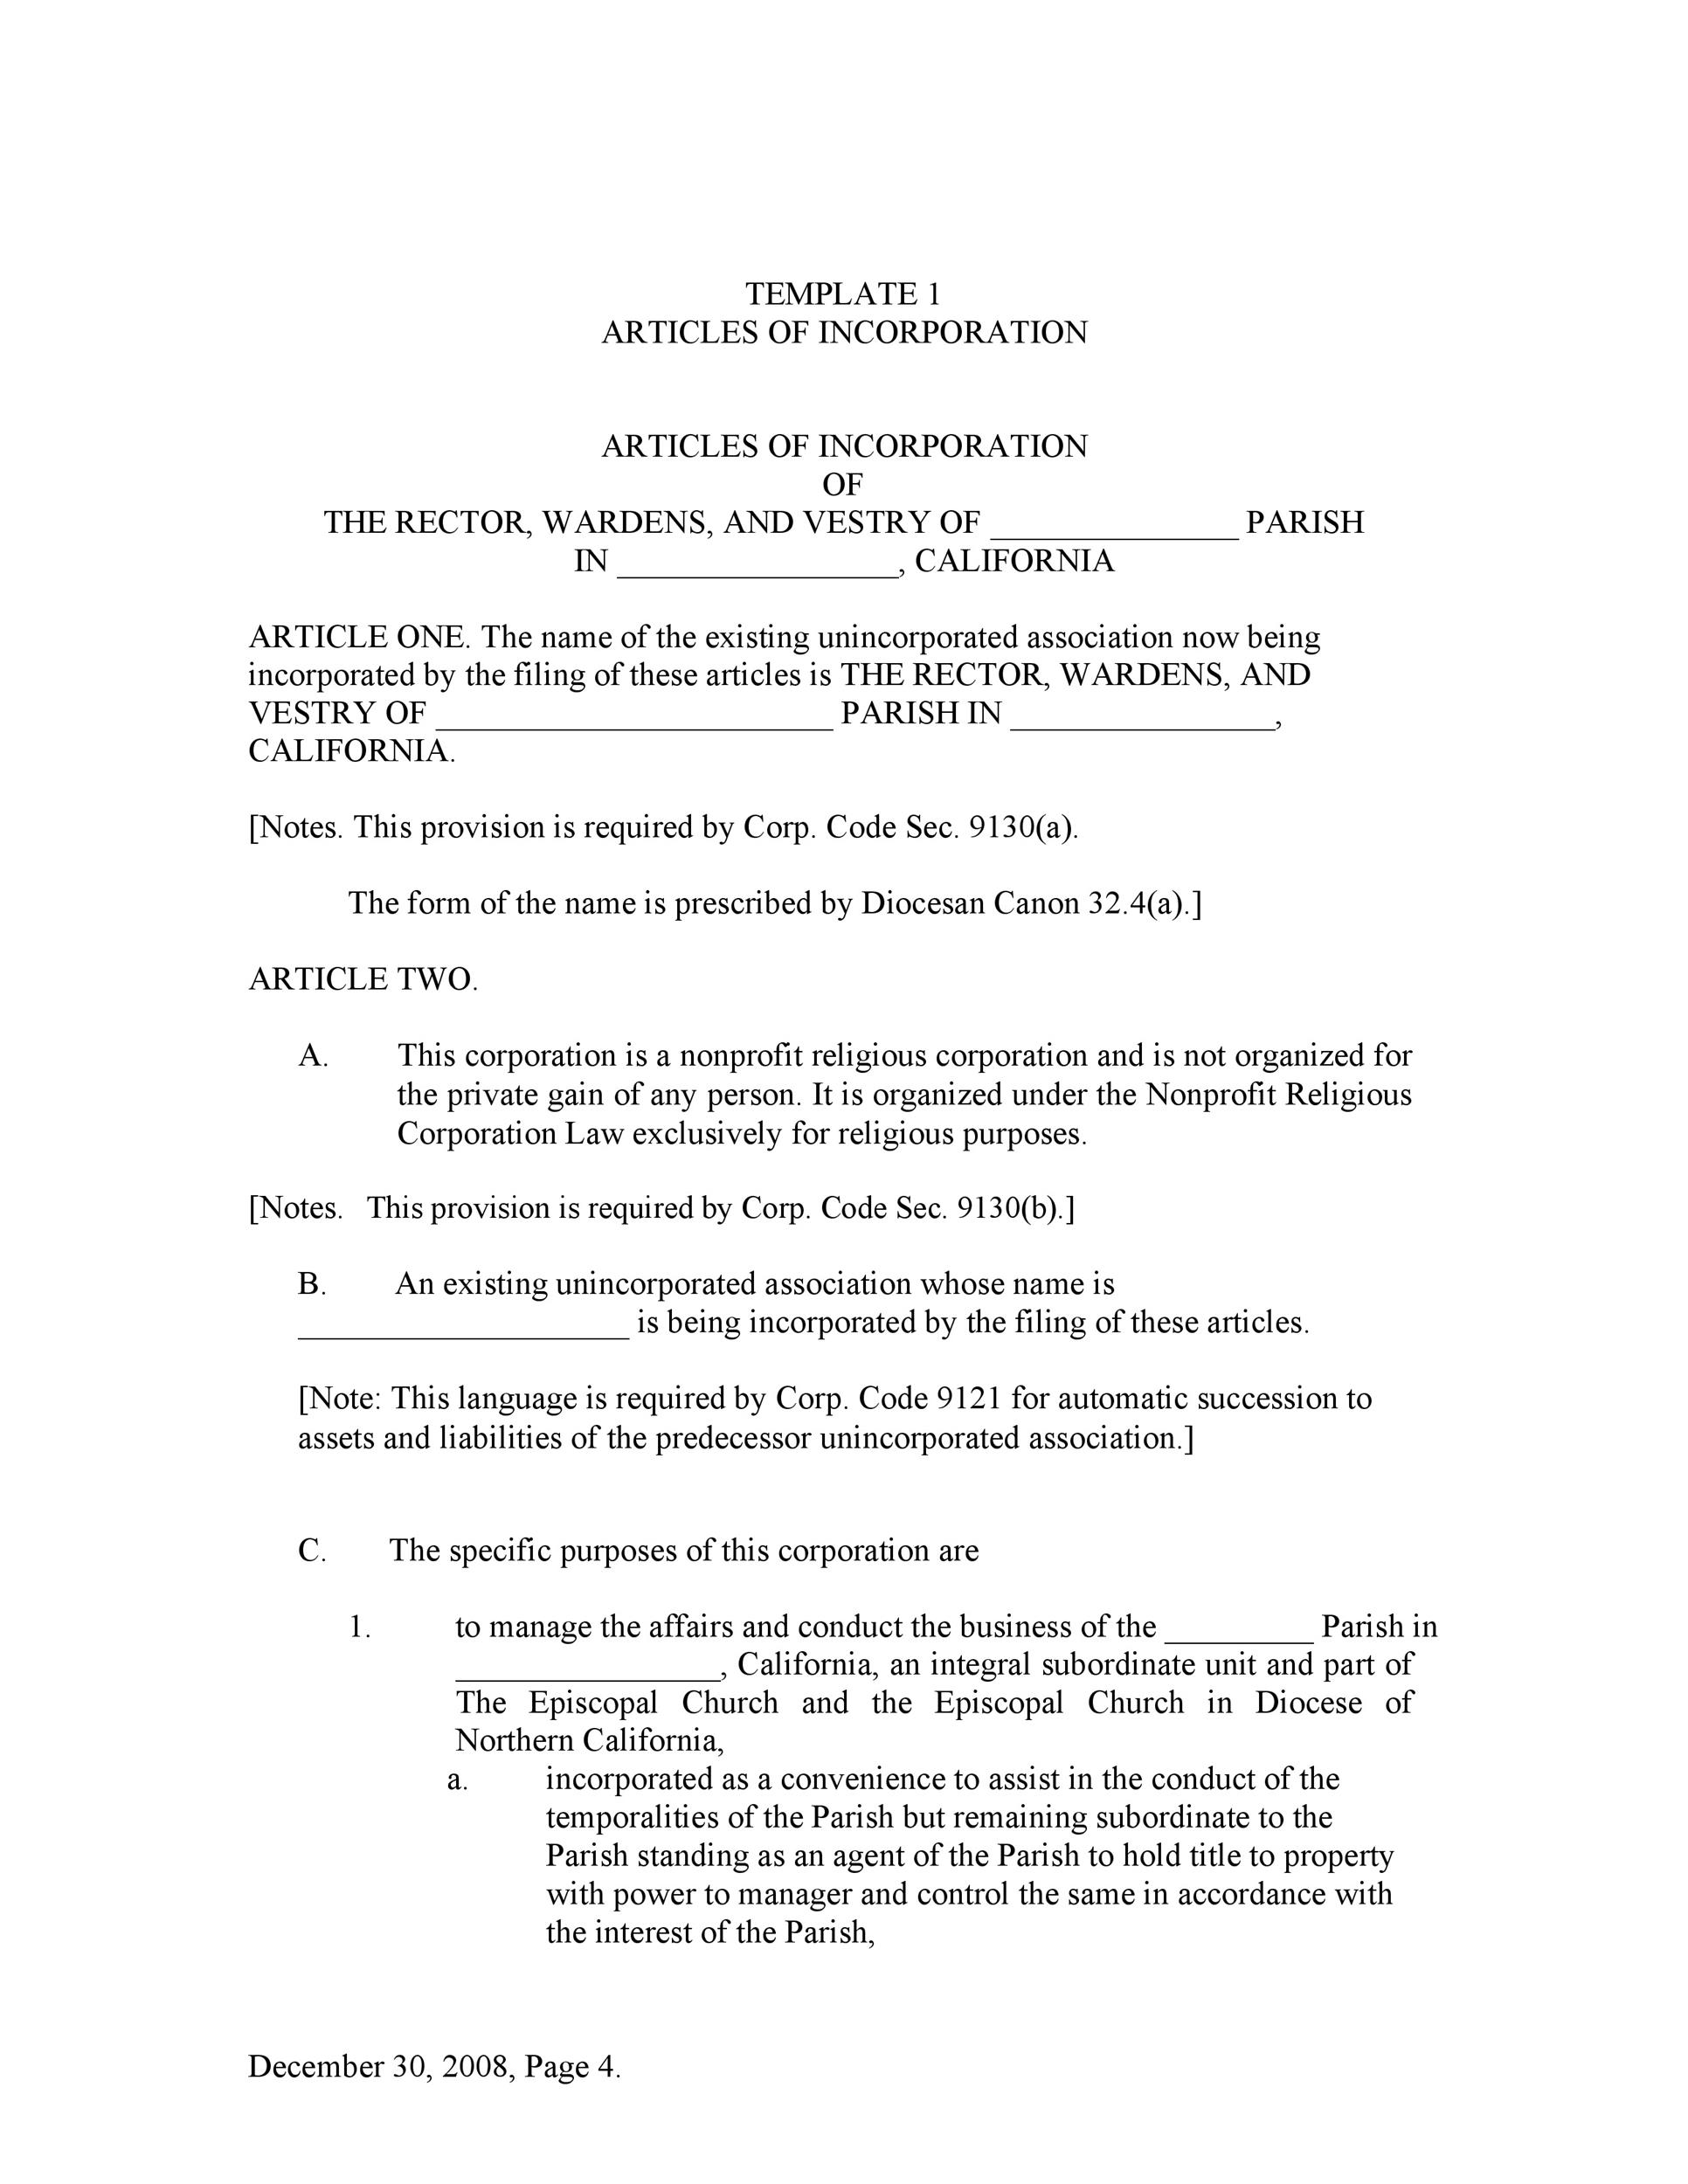 articles of incorporation template articles of incorporation 47 templates for any state ᐅ 20506 | articles of incorporation template 39